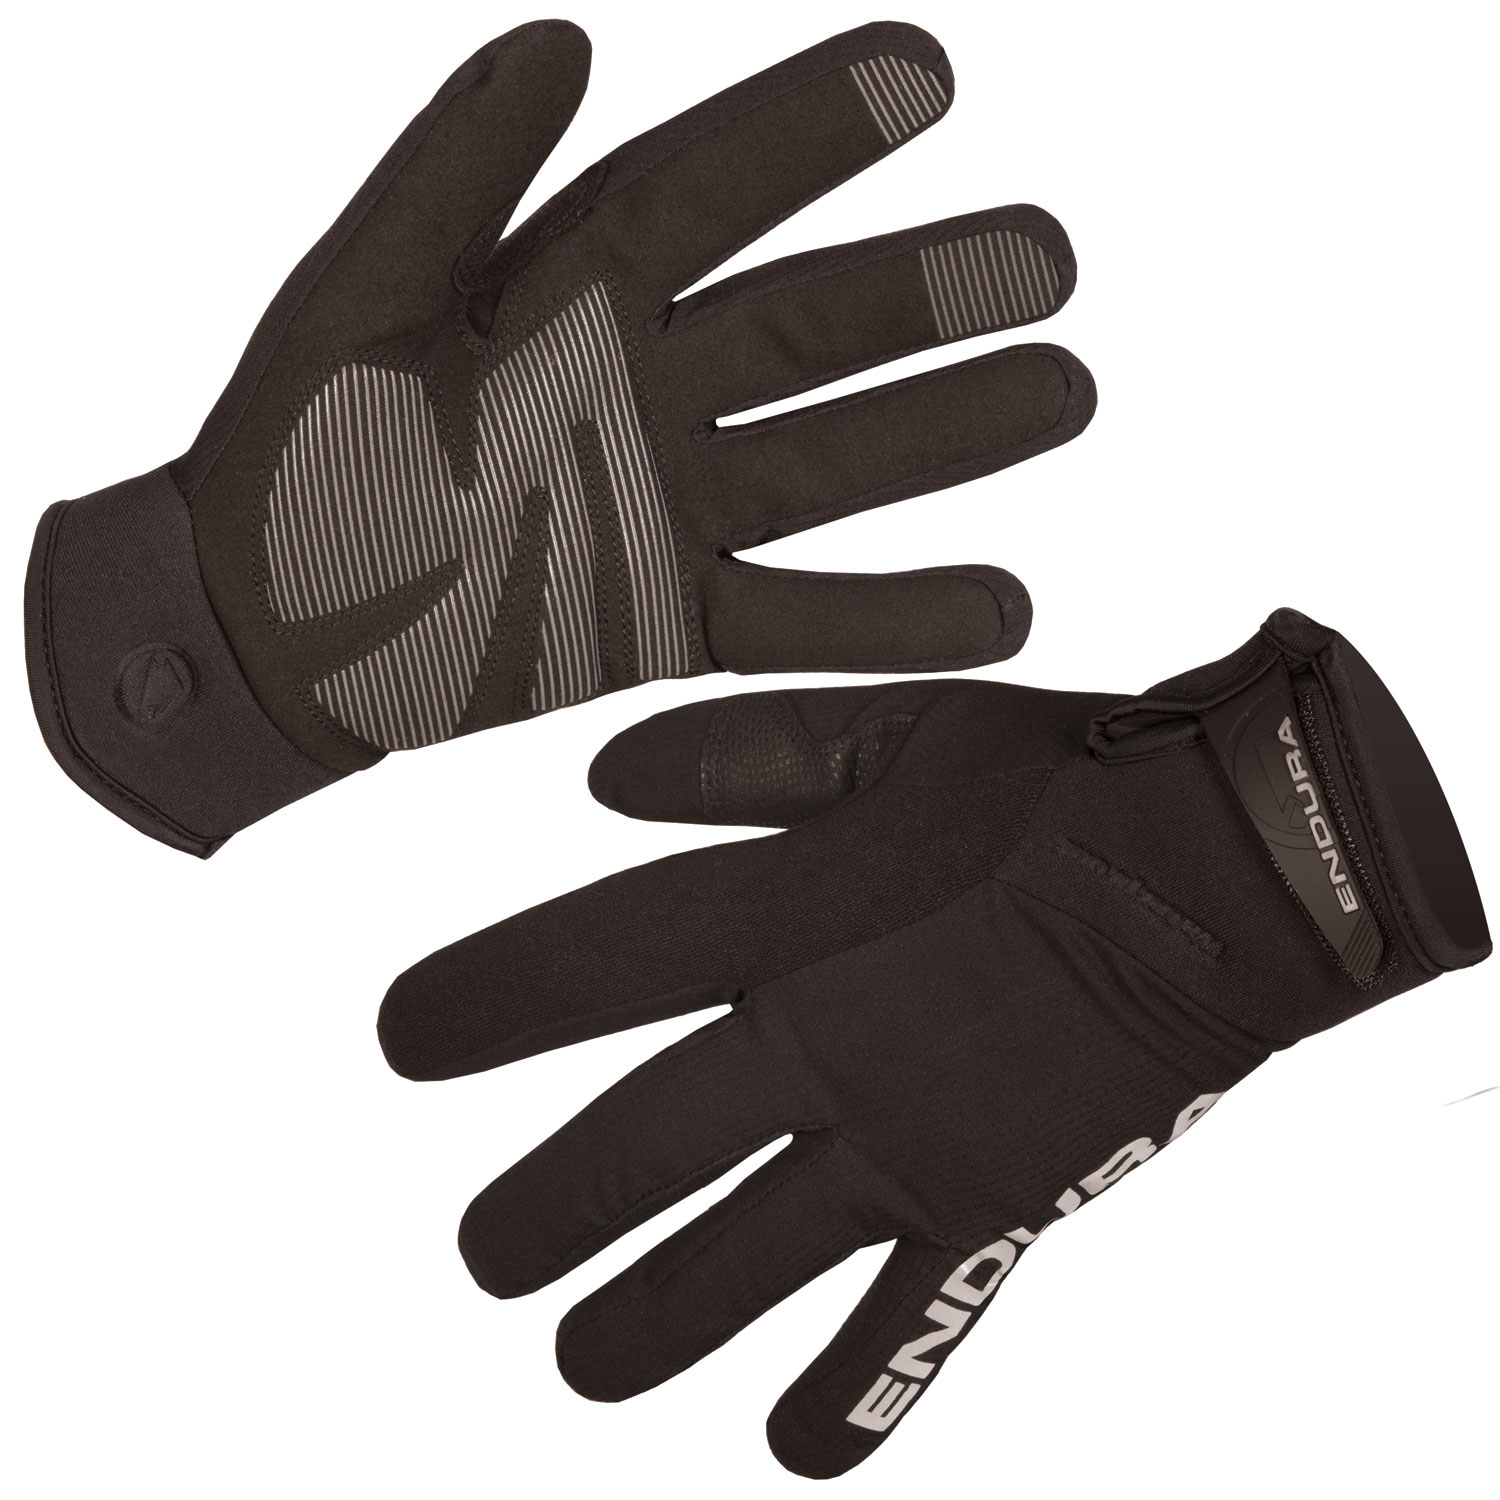 Endura Strike II Gloves $50